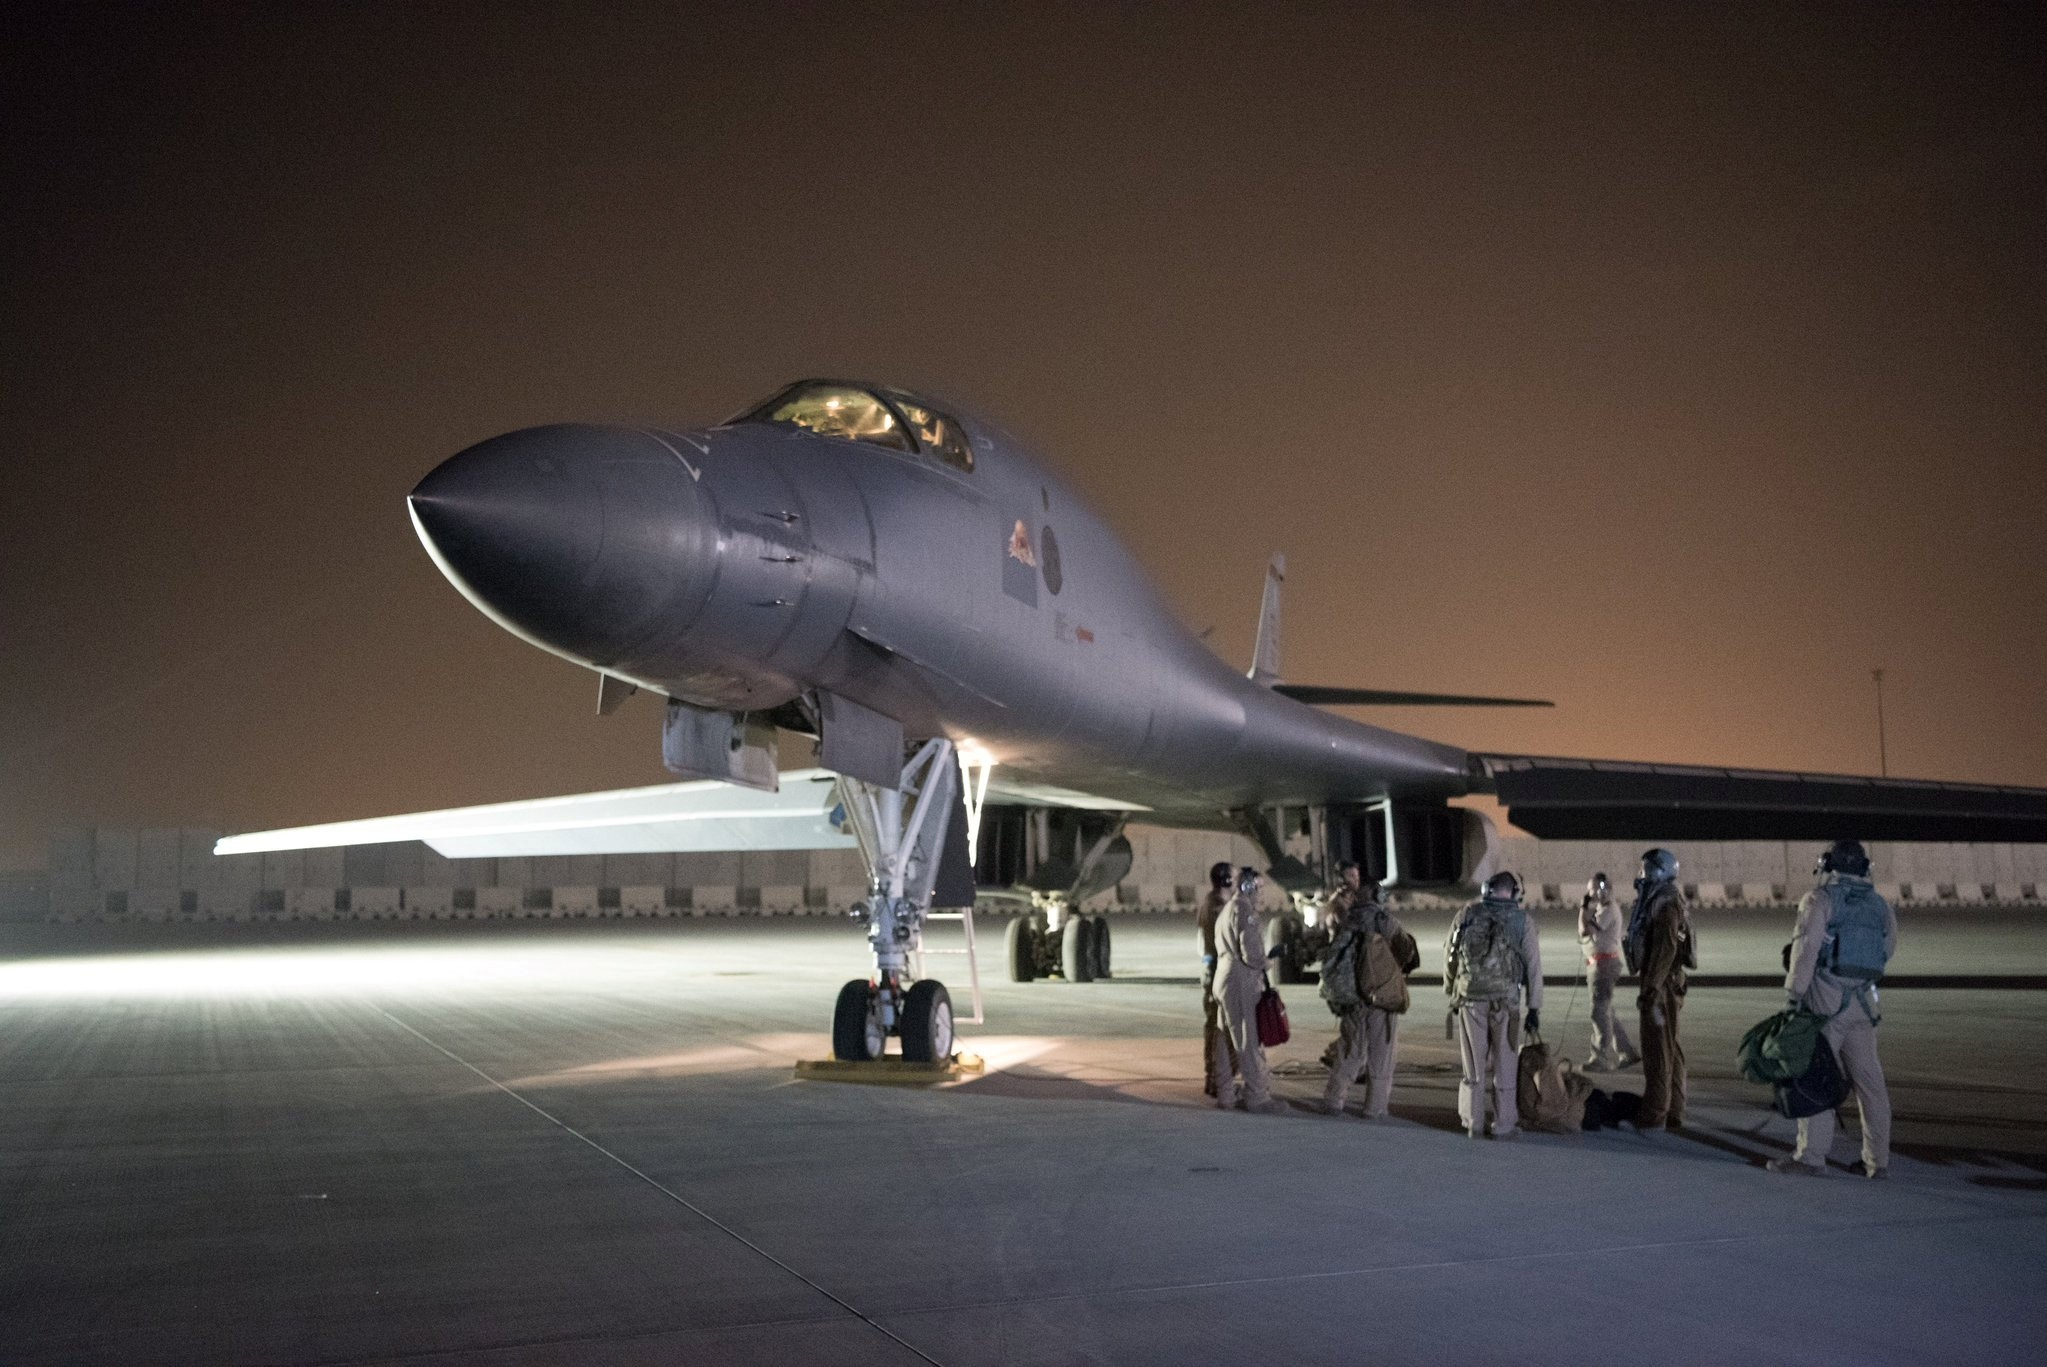 A U.S. Air Force B-1B Lancer and crew, being deployed to launch a strike as part of the multinational response to Syriau2019s use of chemical weapons, is seen at Al Udeid Air Base, Doha, Qatar, April 14.